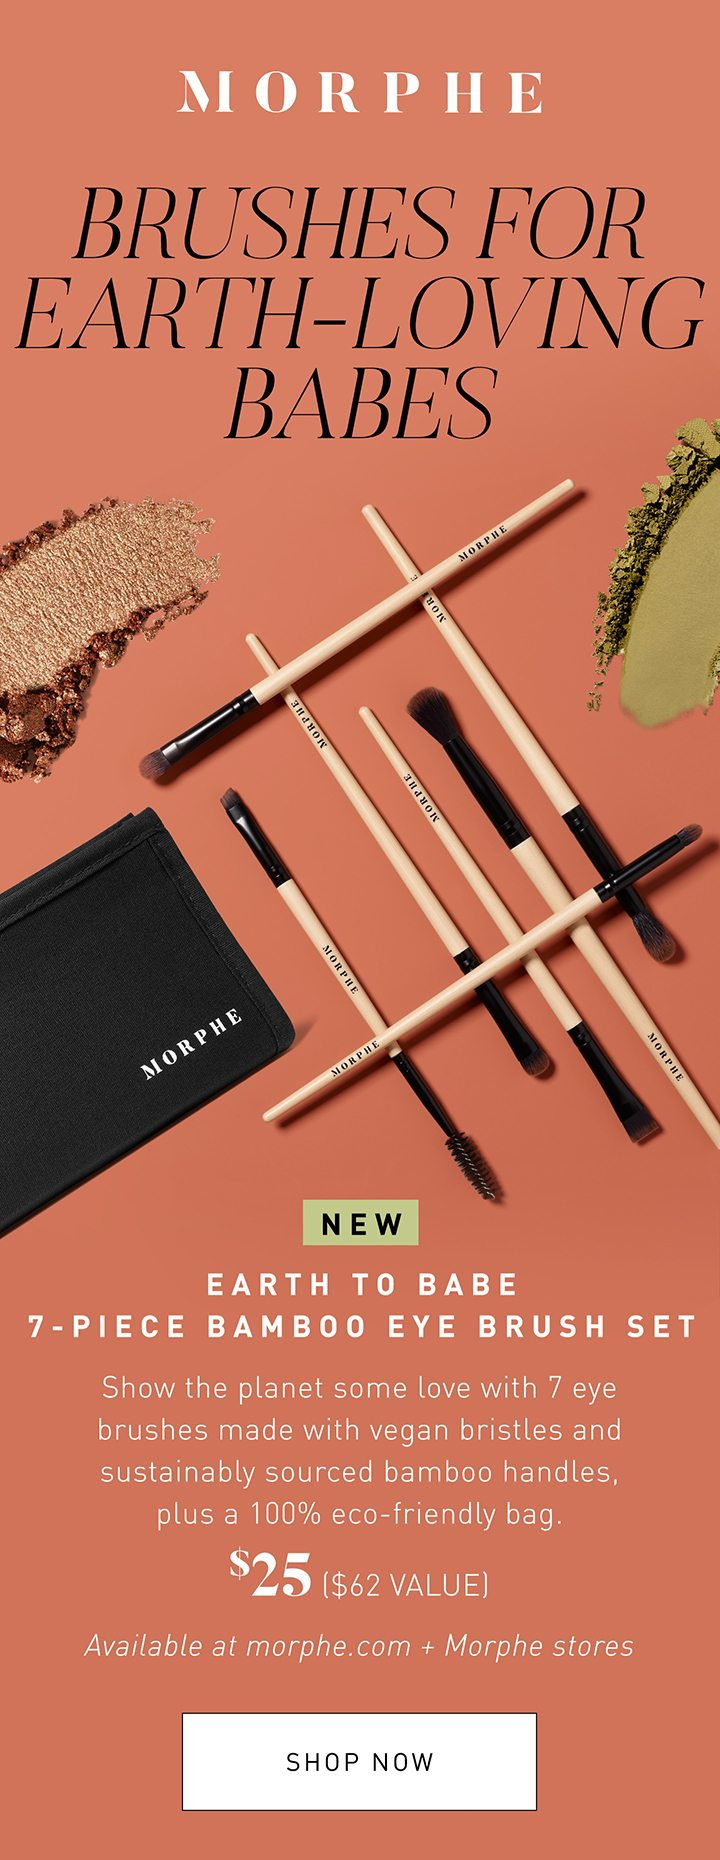 MORPHE BRUSHES FOR EARTH-LOVING BABES NEW EARTH TO BABE 7-PIECE BAMBOO EYE BRUSH SET Show the planet some love with 7 eye brushes made with vegan bristles and sustainably sourced bamboo handles, plus a 100% eco-friendly bag. $20 ($35 VALUE) Available at morphe.com + Morphe stores SHOP NOW